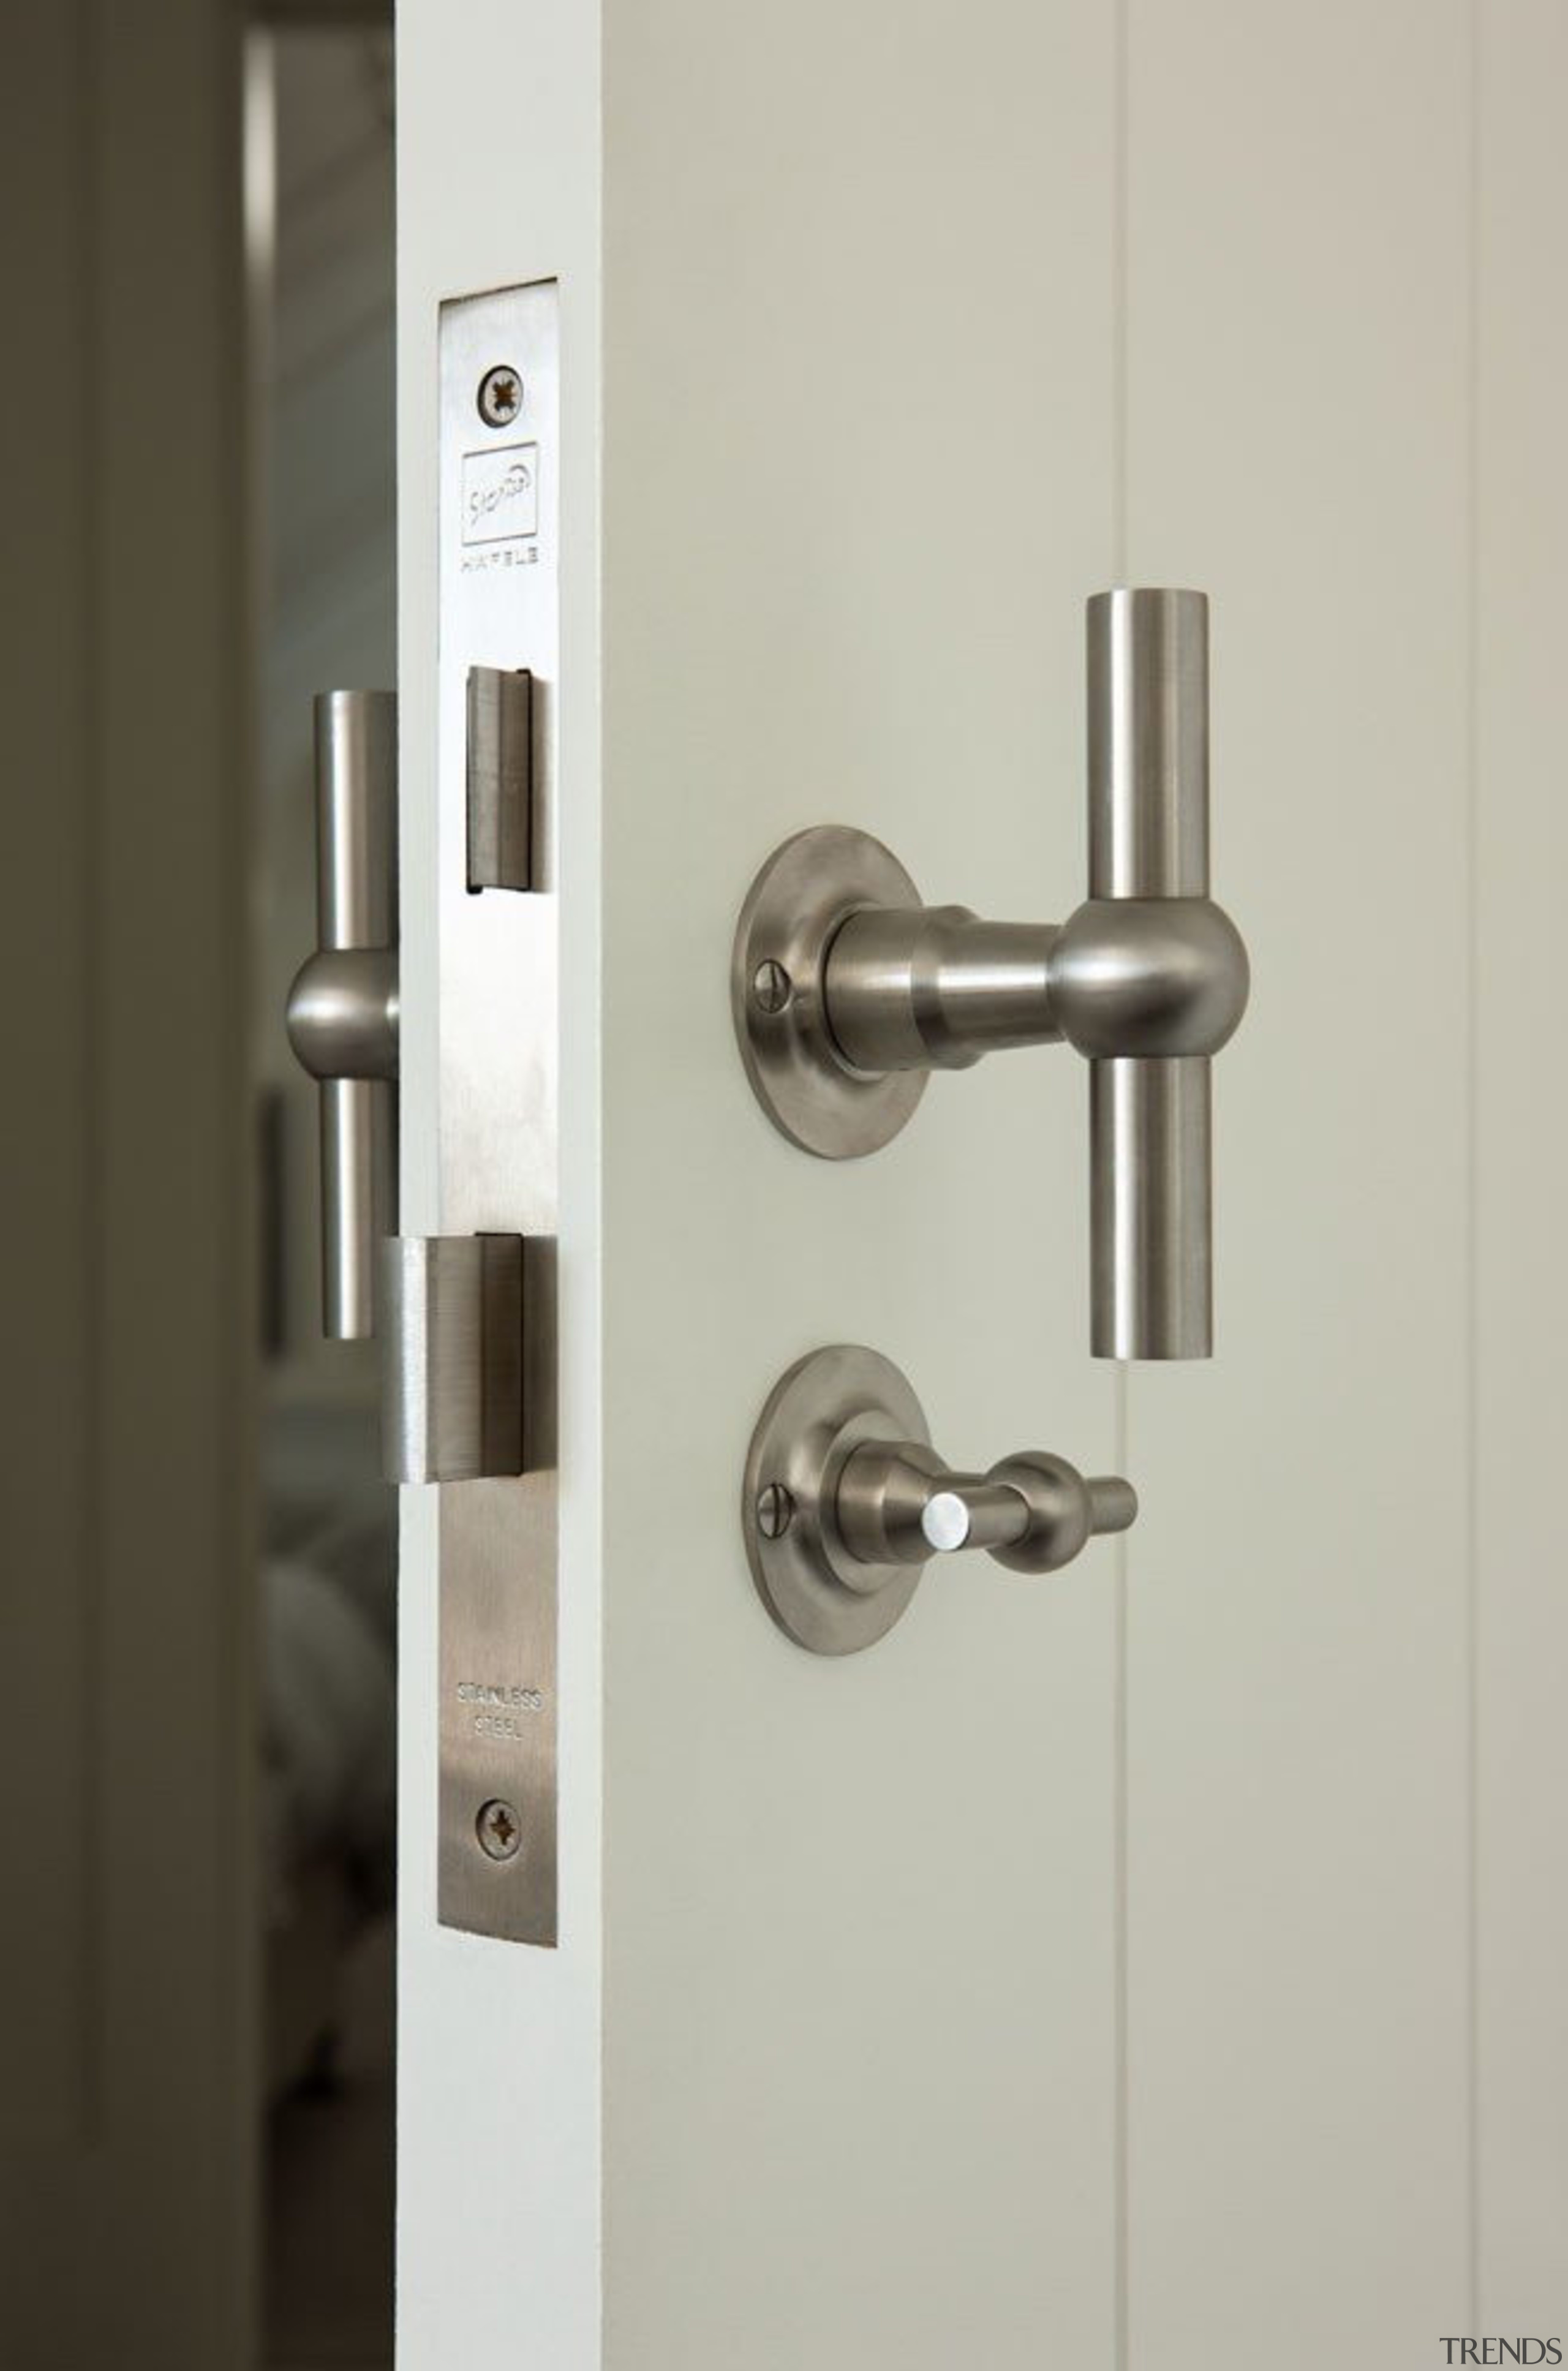 Formani Ferrovia exclusive to www.sopersmac.co.nz - Formani Ferrovia door handle, hardware accessory, lock, product design, gray